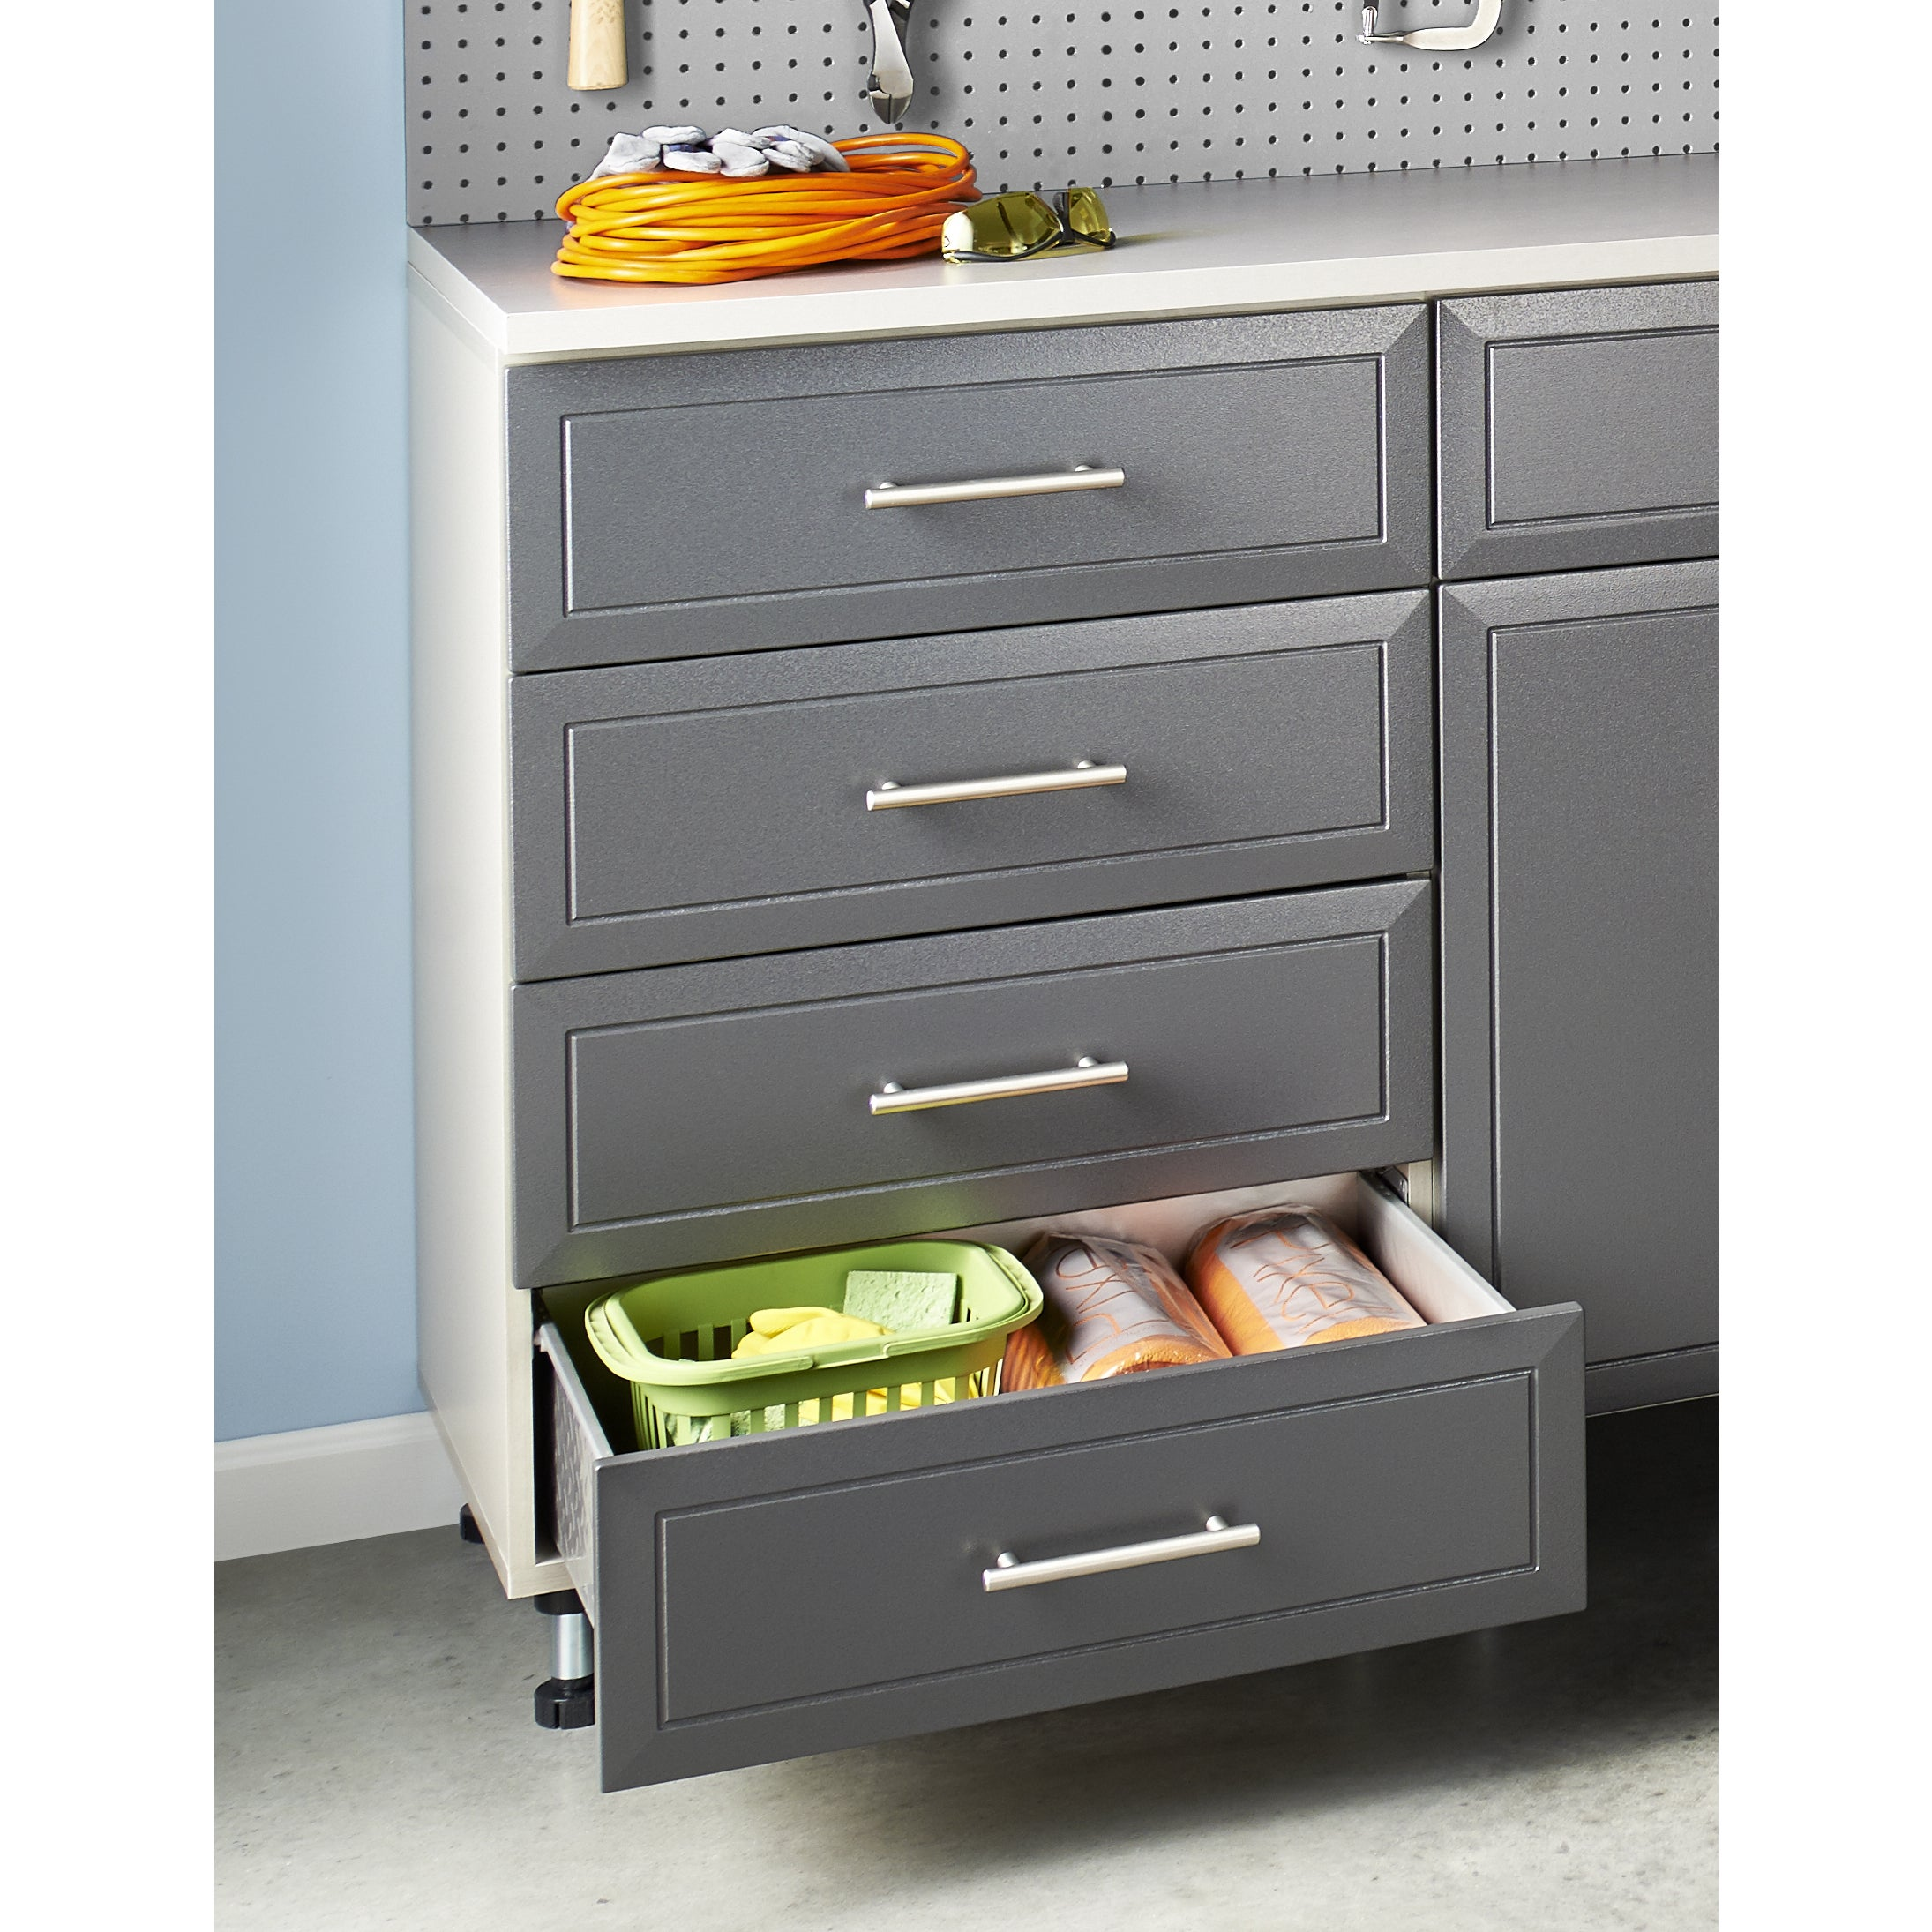 ClosetMaid ProGarage 4 Drawer Cabinet   Free Shipping Today   Overstock    18373919